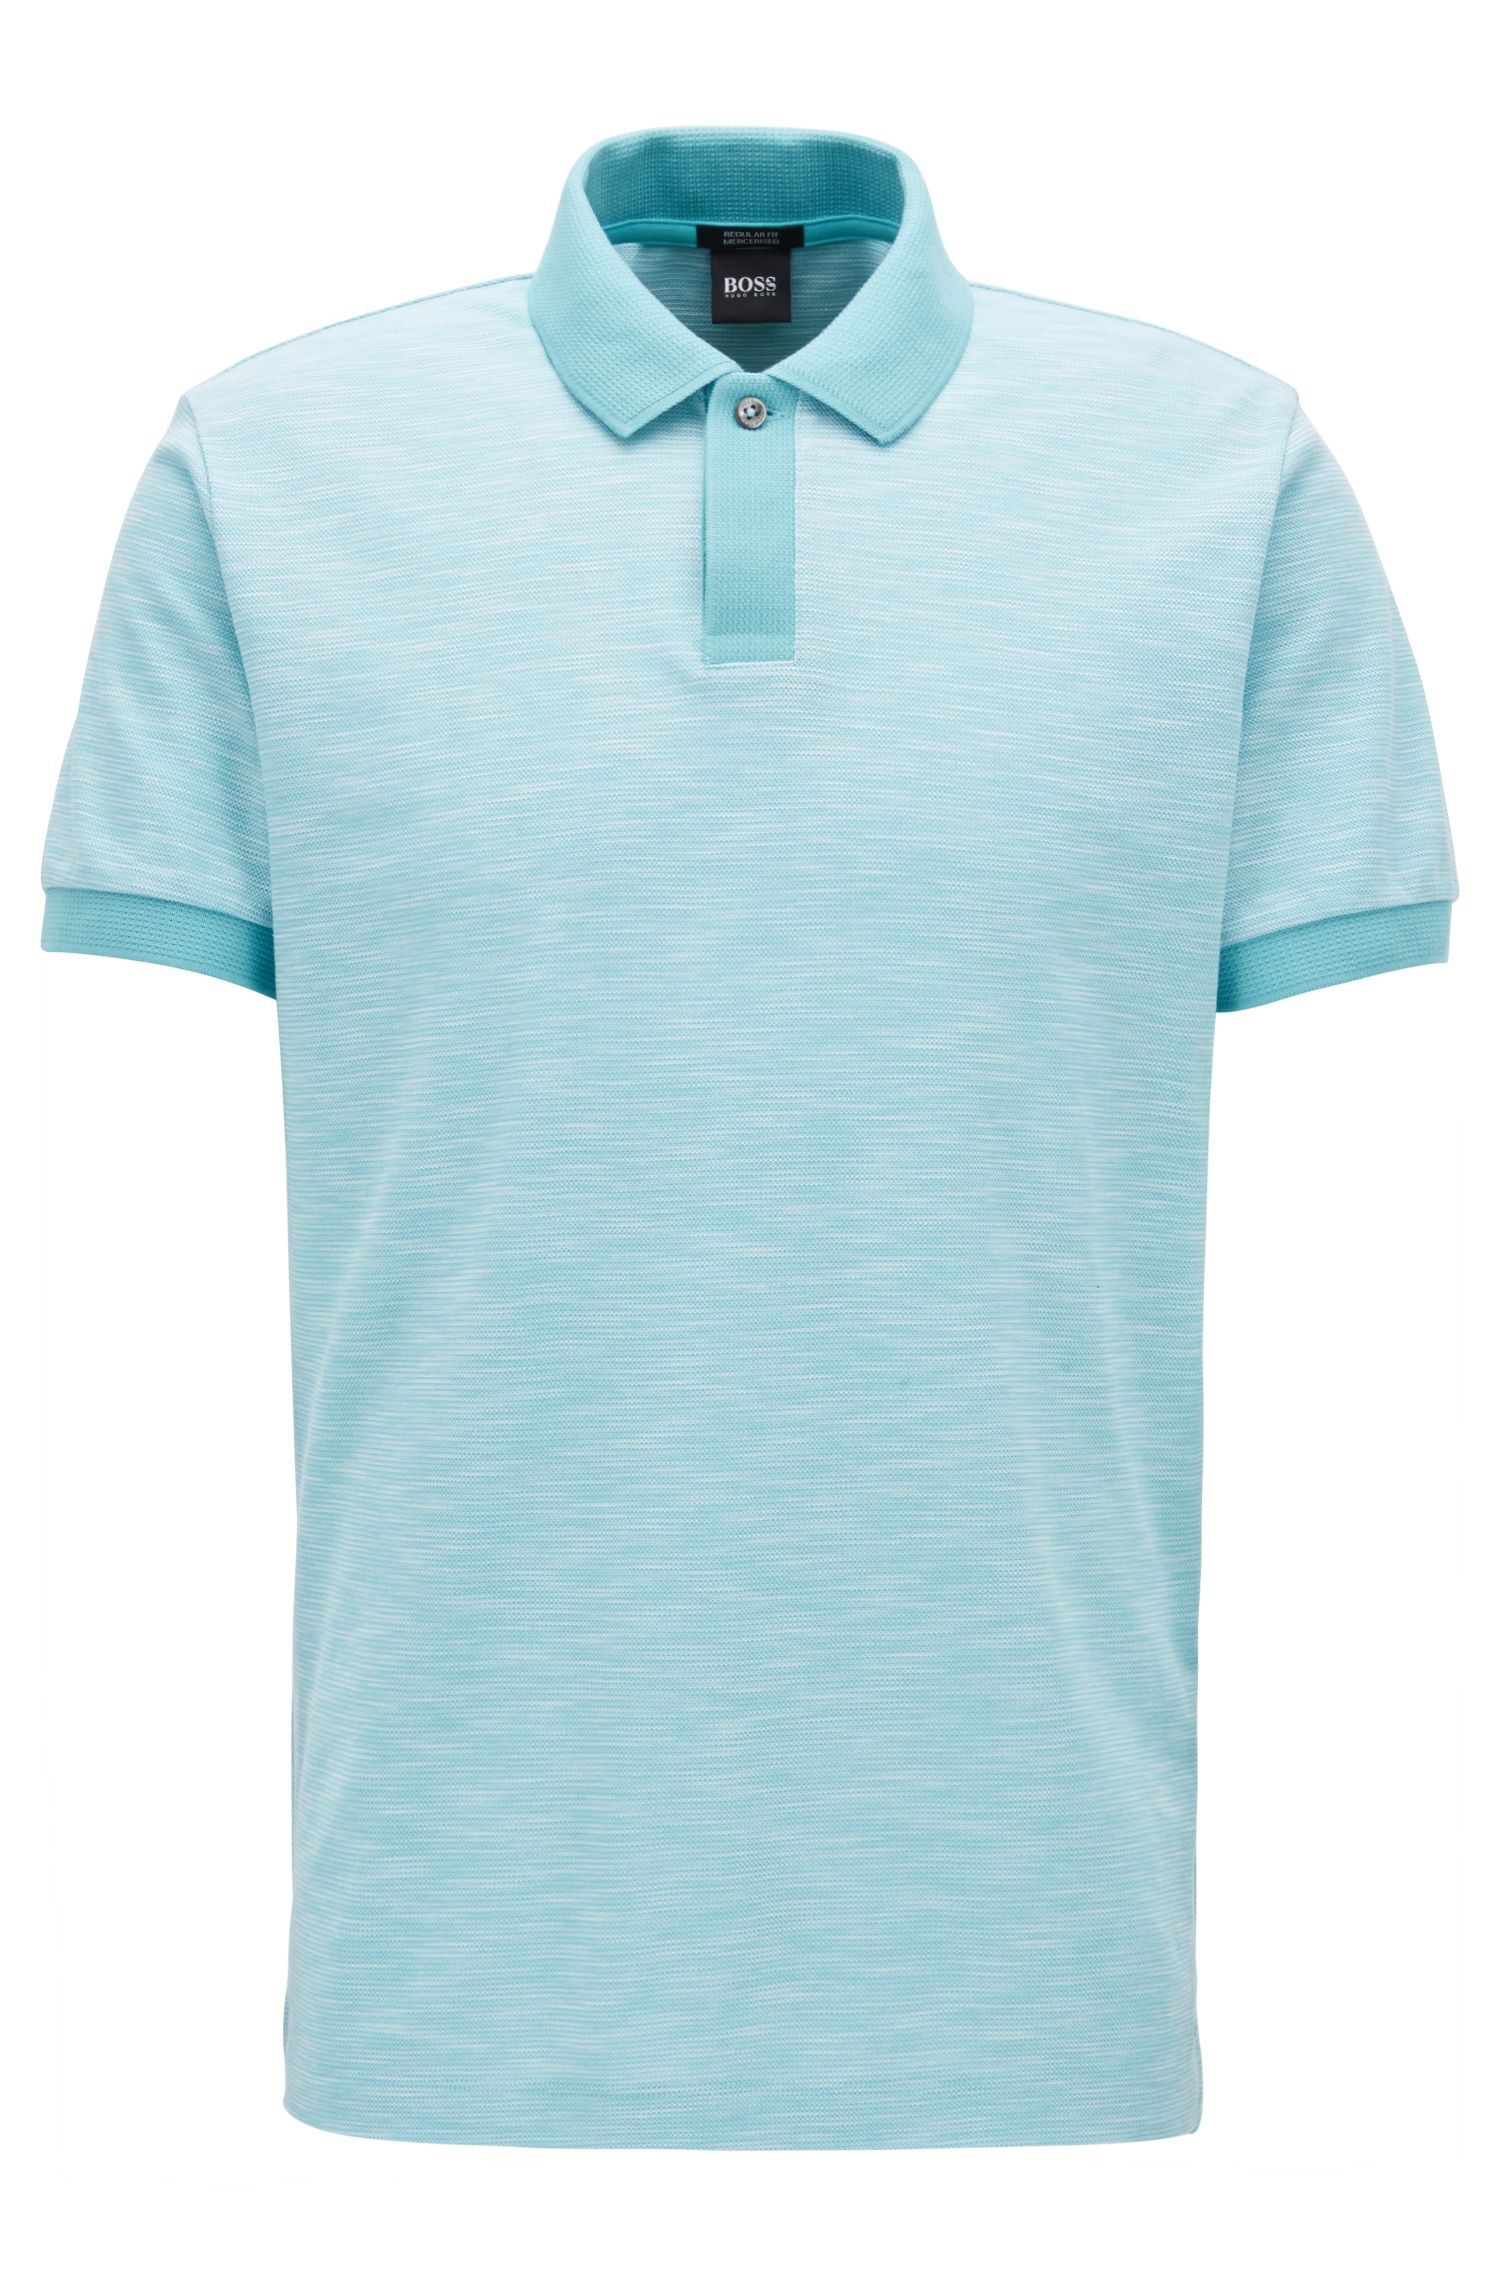 Mercerized Cotton Polo Shirt, Regular Fit | Parlay, Light Blue